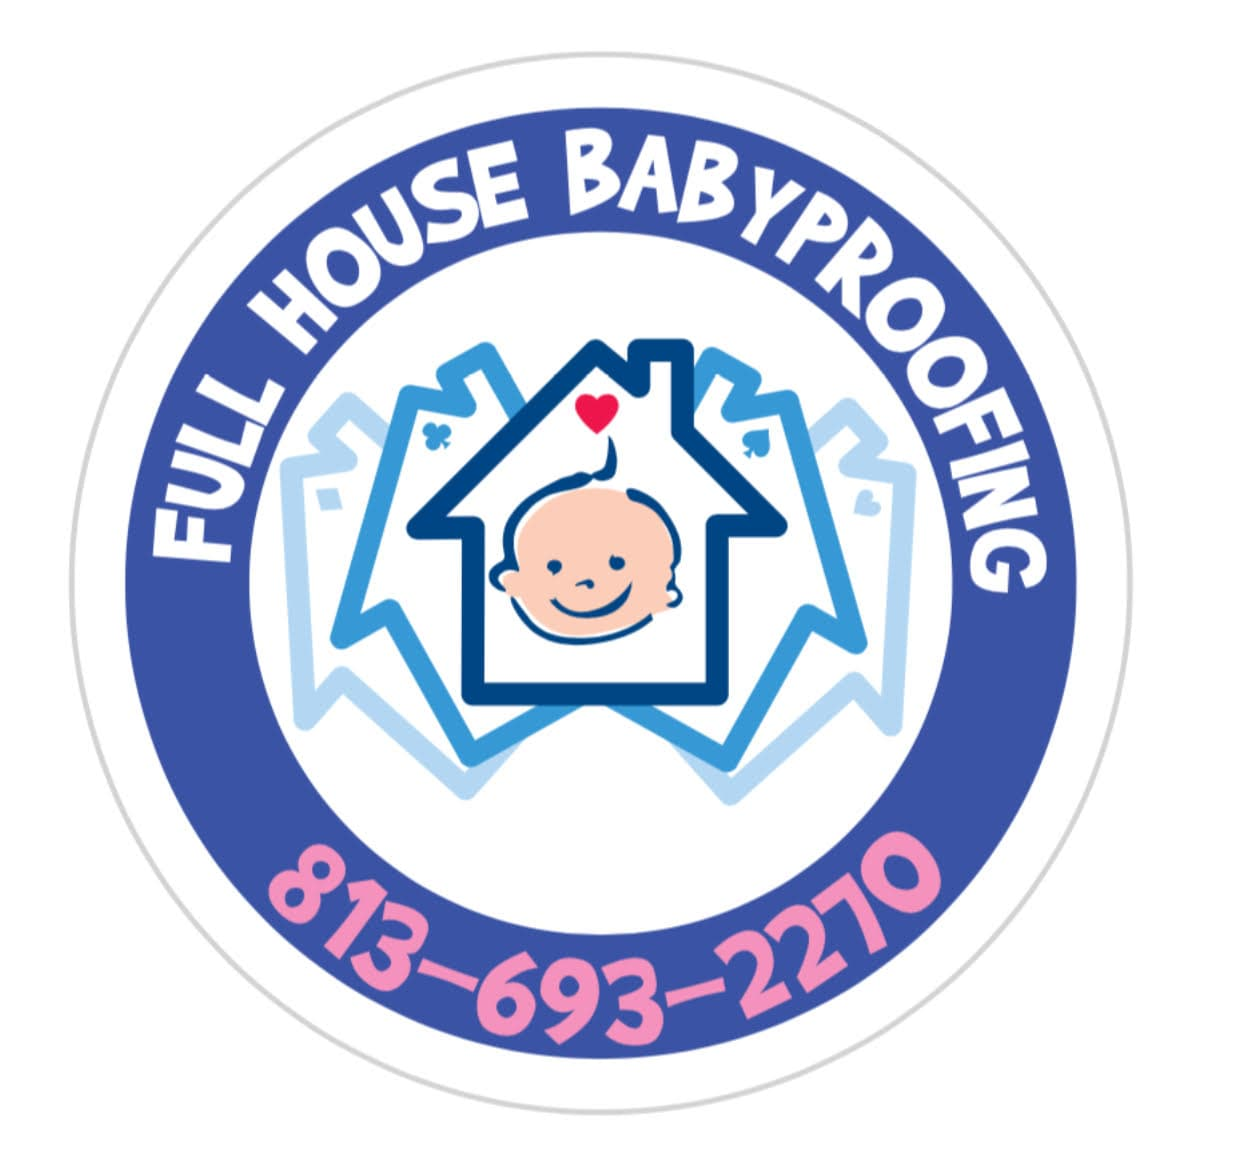 Full House Babyproofing